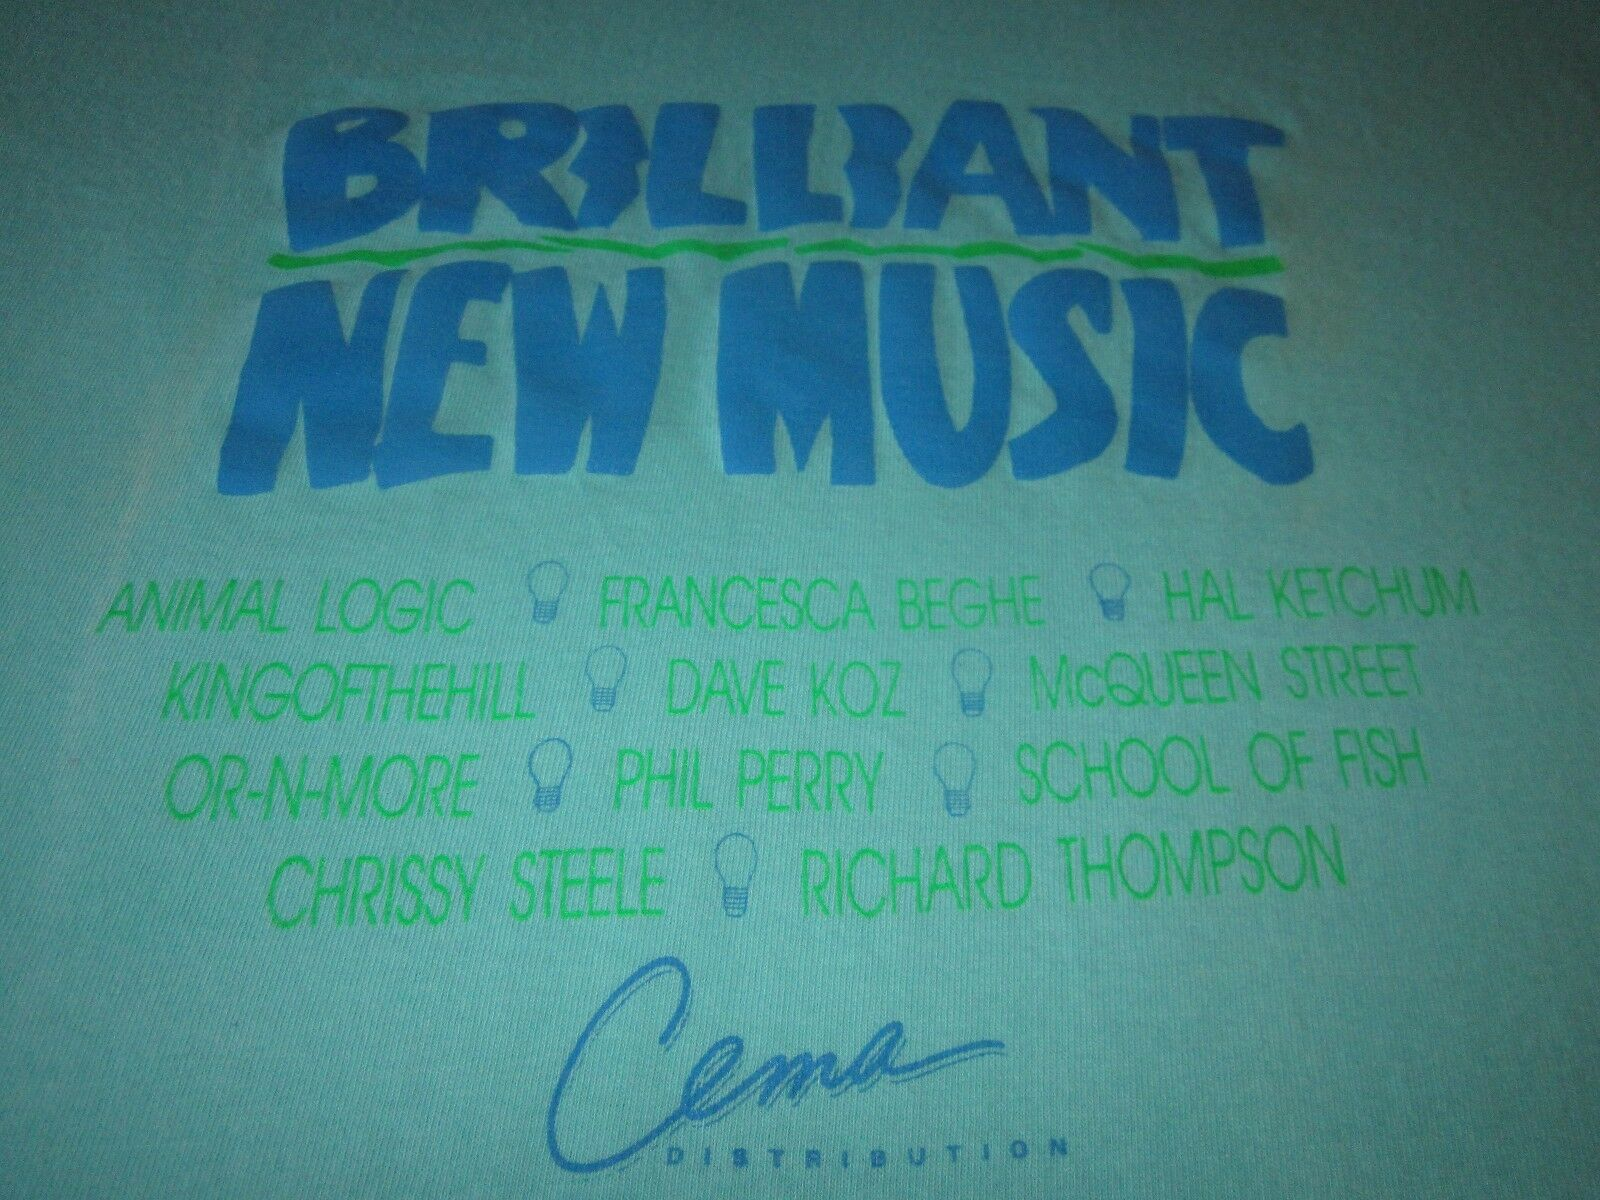 BRILLIANT NEW MUSIC TEE SHIRT SCHOOL OF FISH ANIMAL LOGIC RICHARD THOMPSON 80S